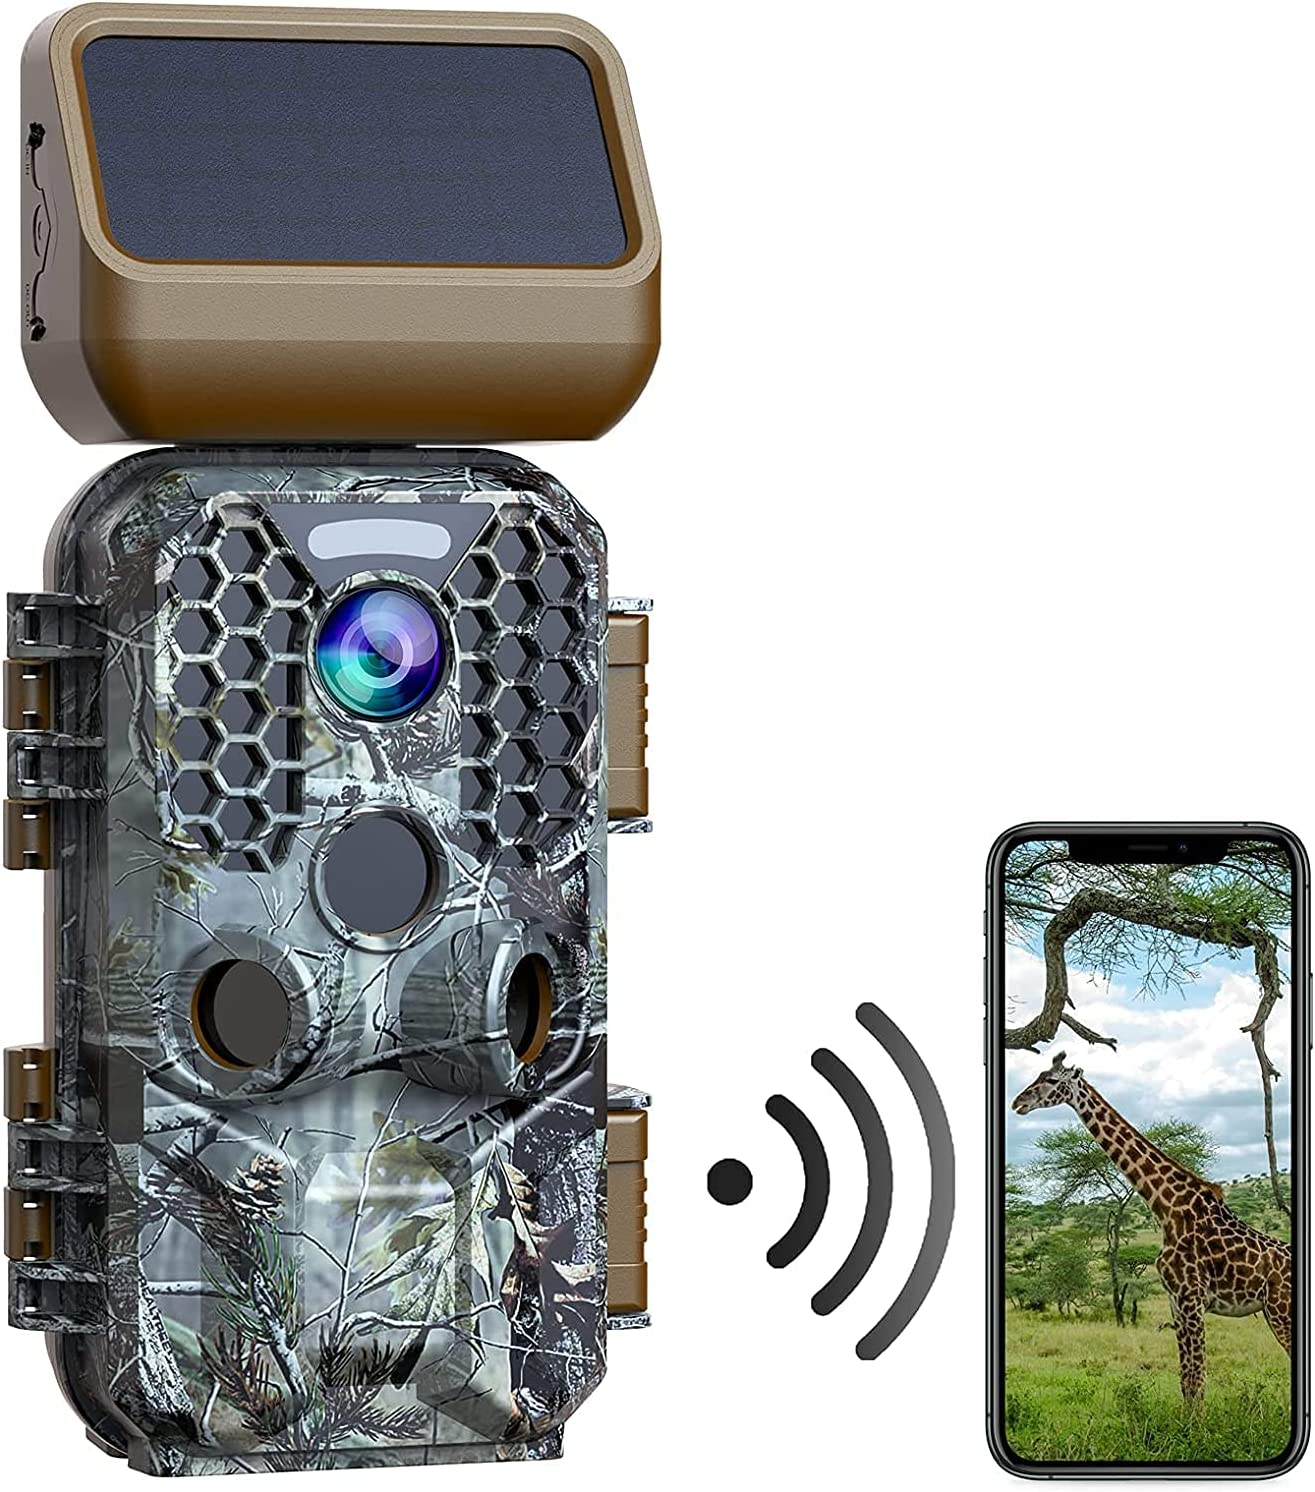 Popular brand in the world WiFi Easy-to-use Trail Camera Solar Powered Hunti 30MP Native 4K Game